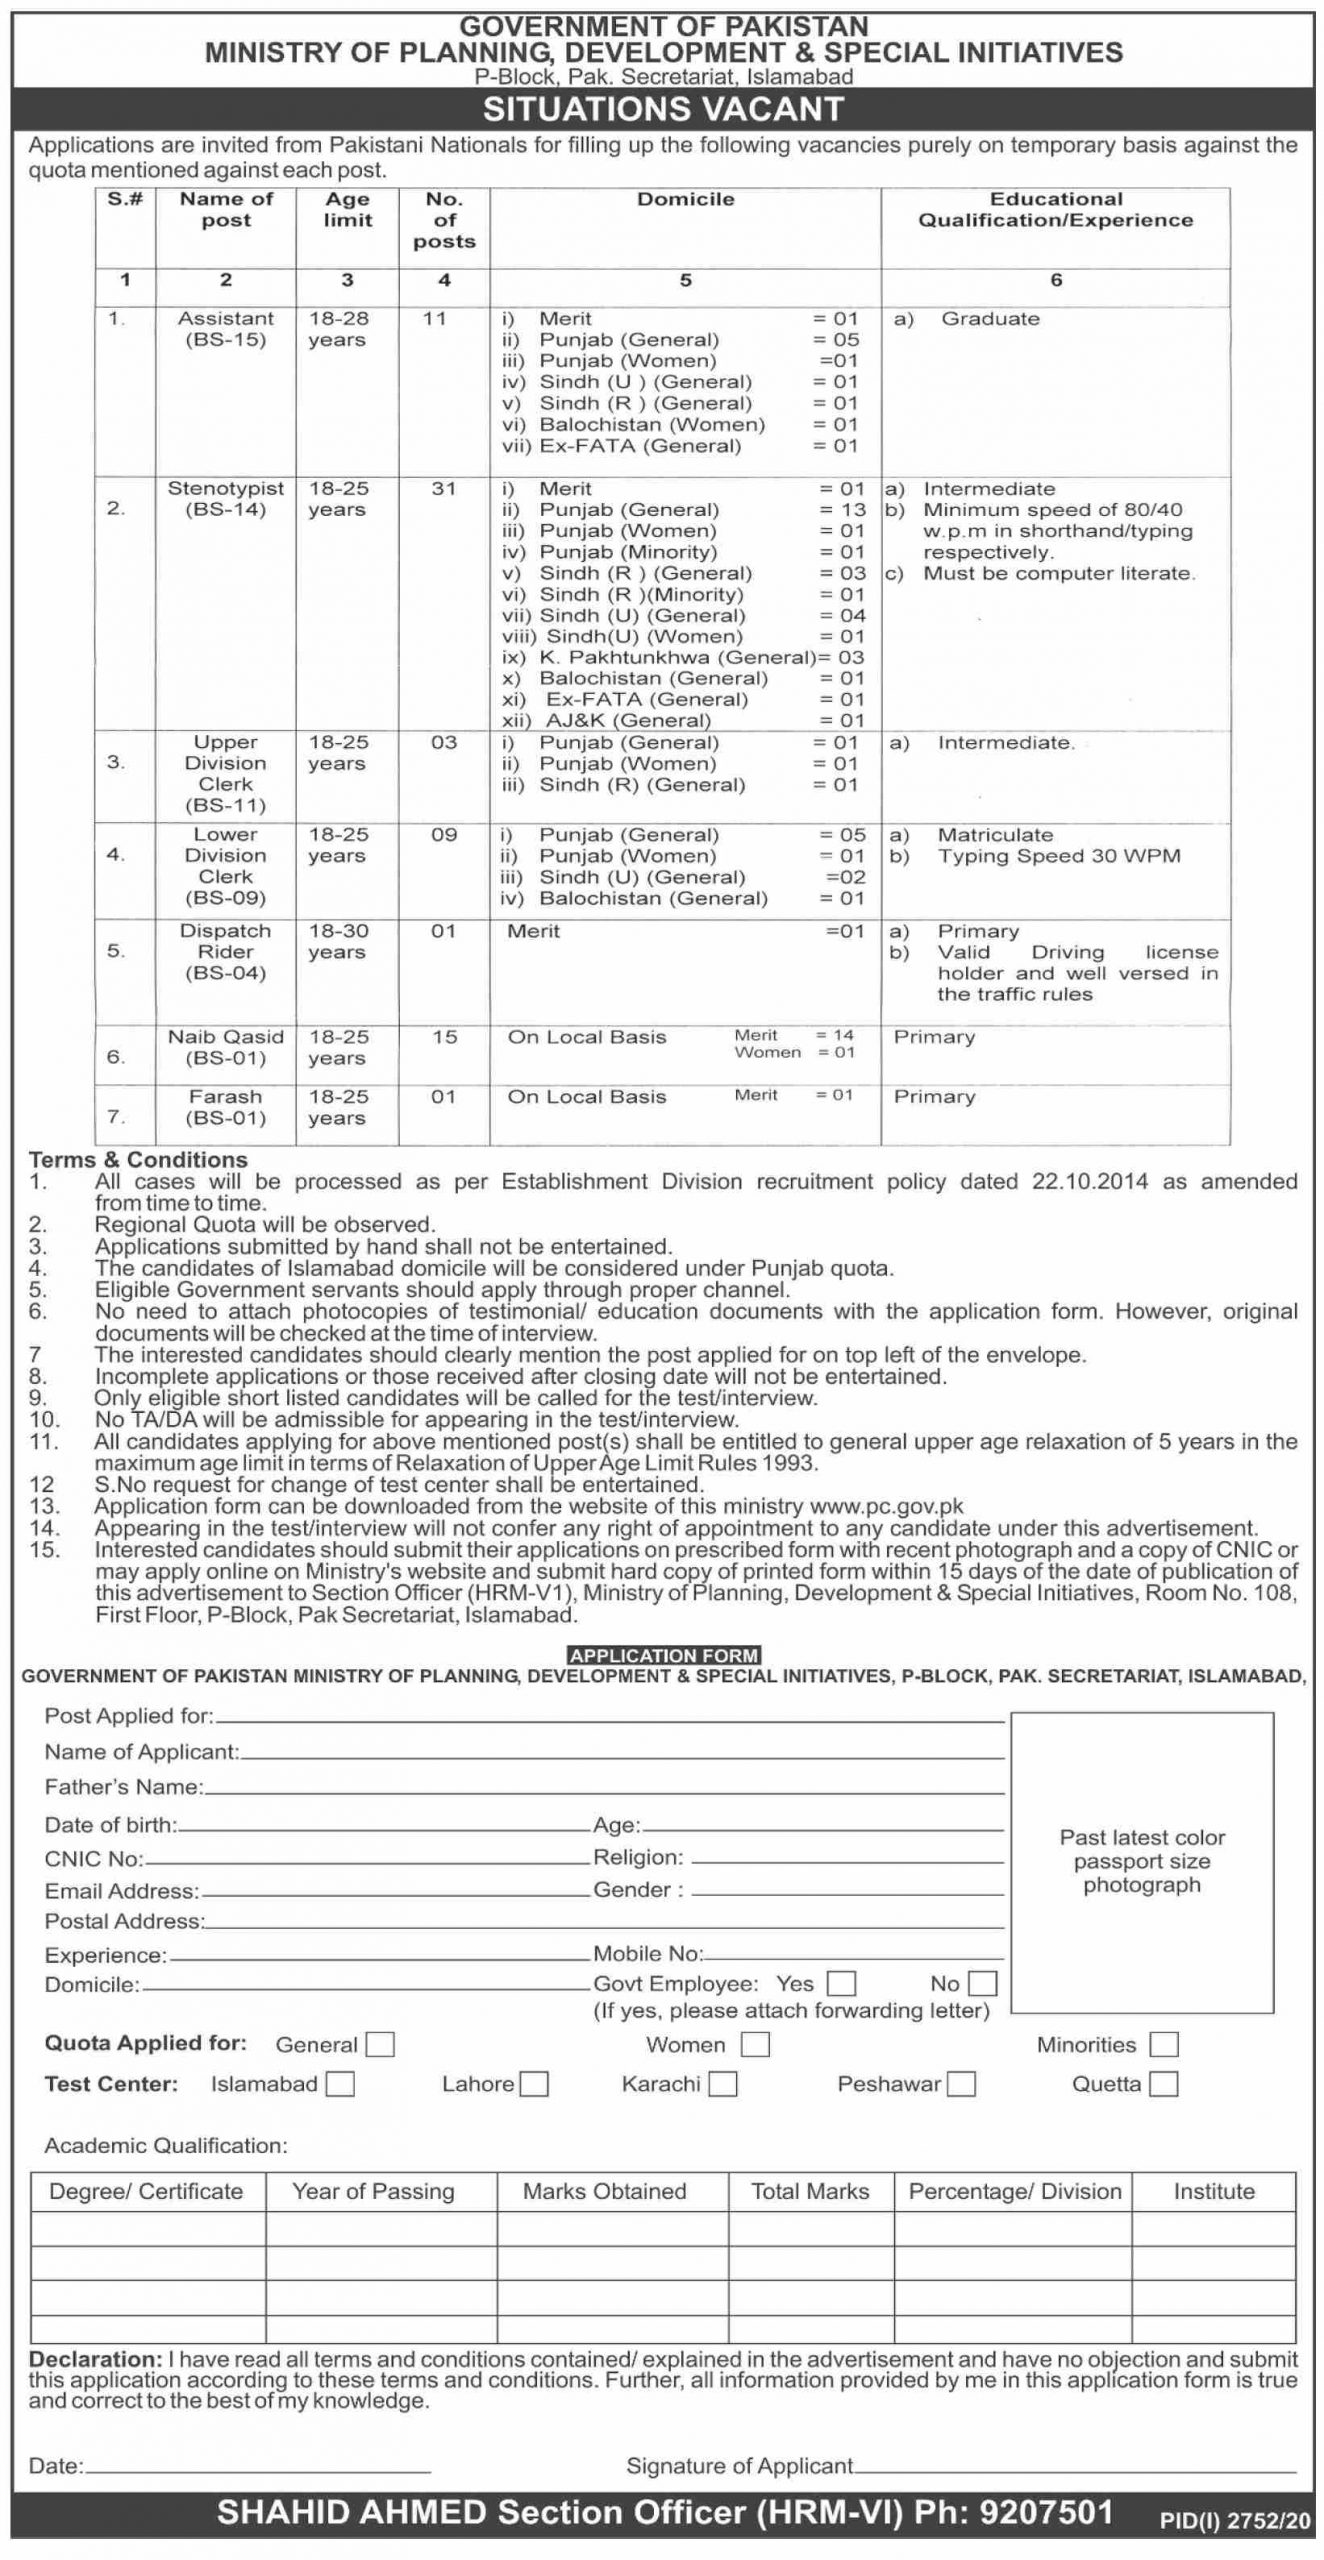 Ministry of Planning Development & Special Initiatives jobs 2020